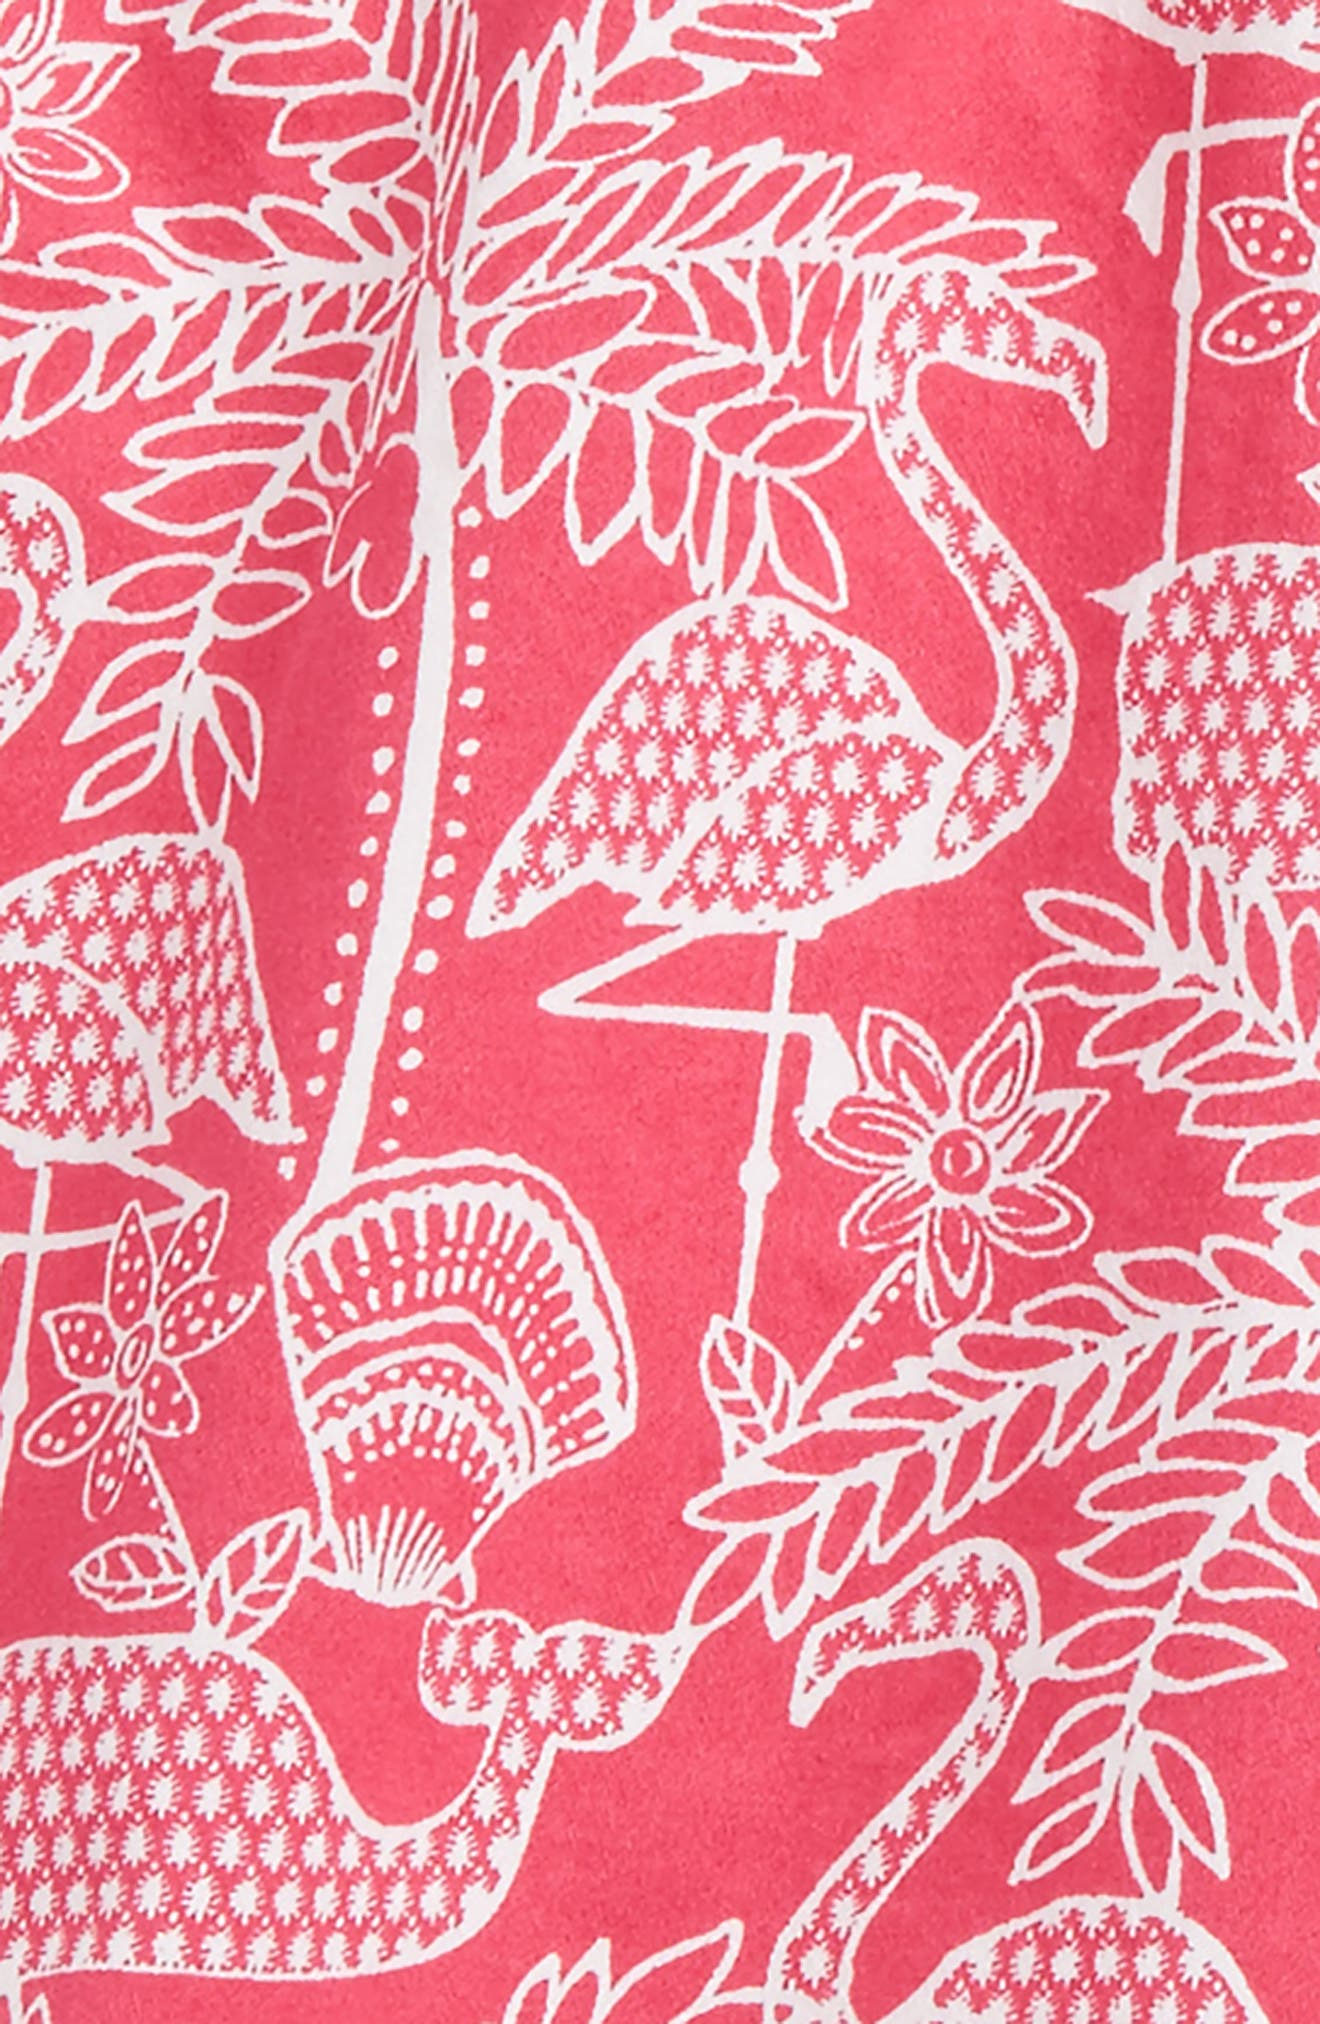 Flamingo Print Shorts,                             Alternate thumbnail 2, color,                             658